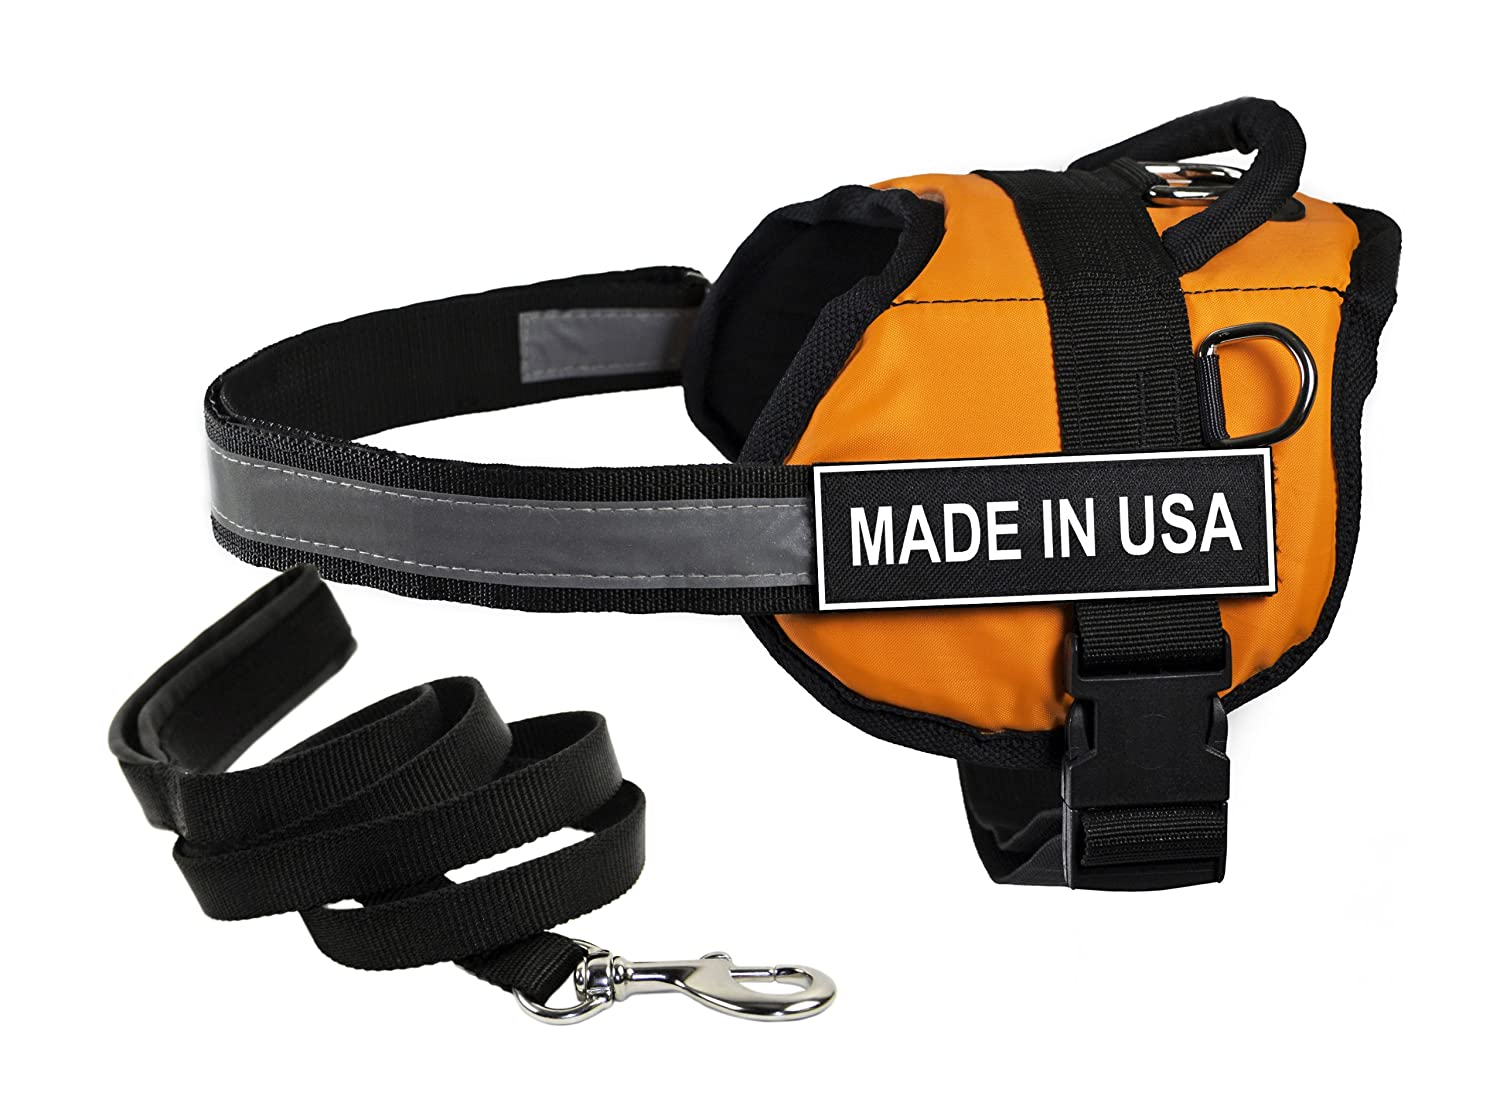 Dean & Tyler's DT Works orange MADE IN USA Harness with Chest Padding, X-Small, and Black 6 ft Padded Puppy Leash.